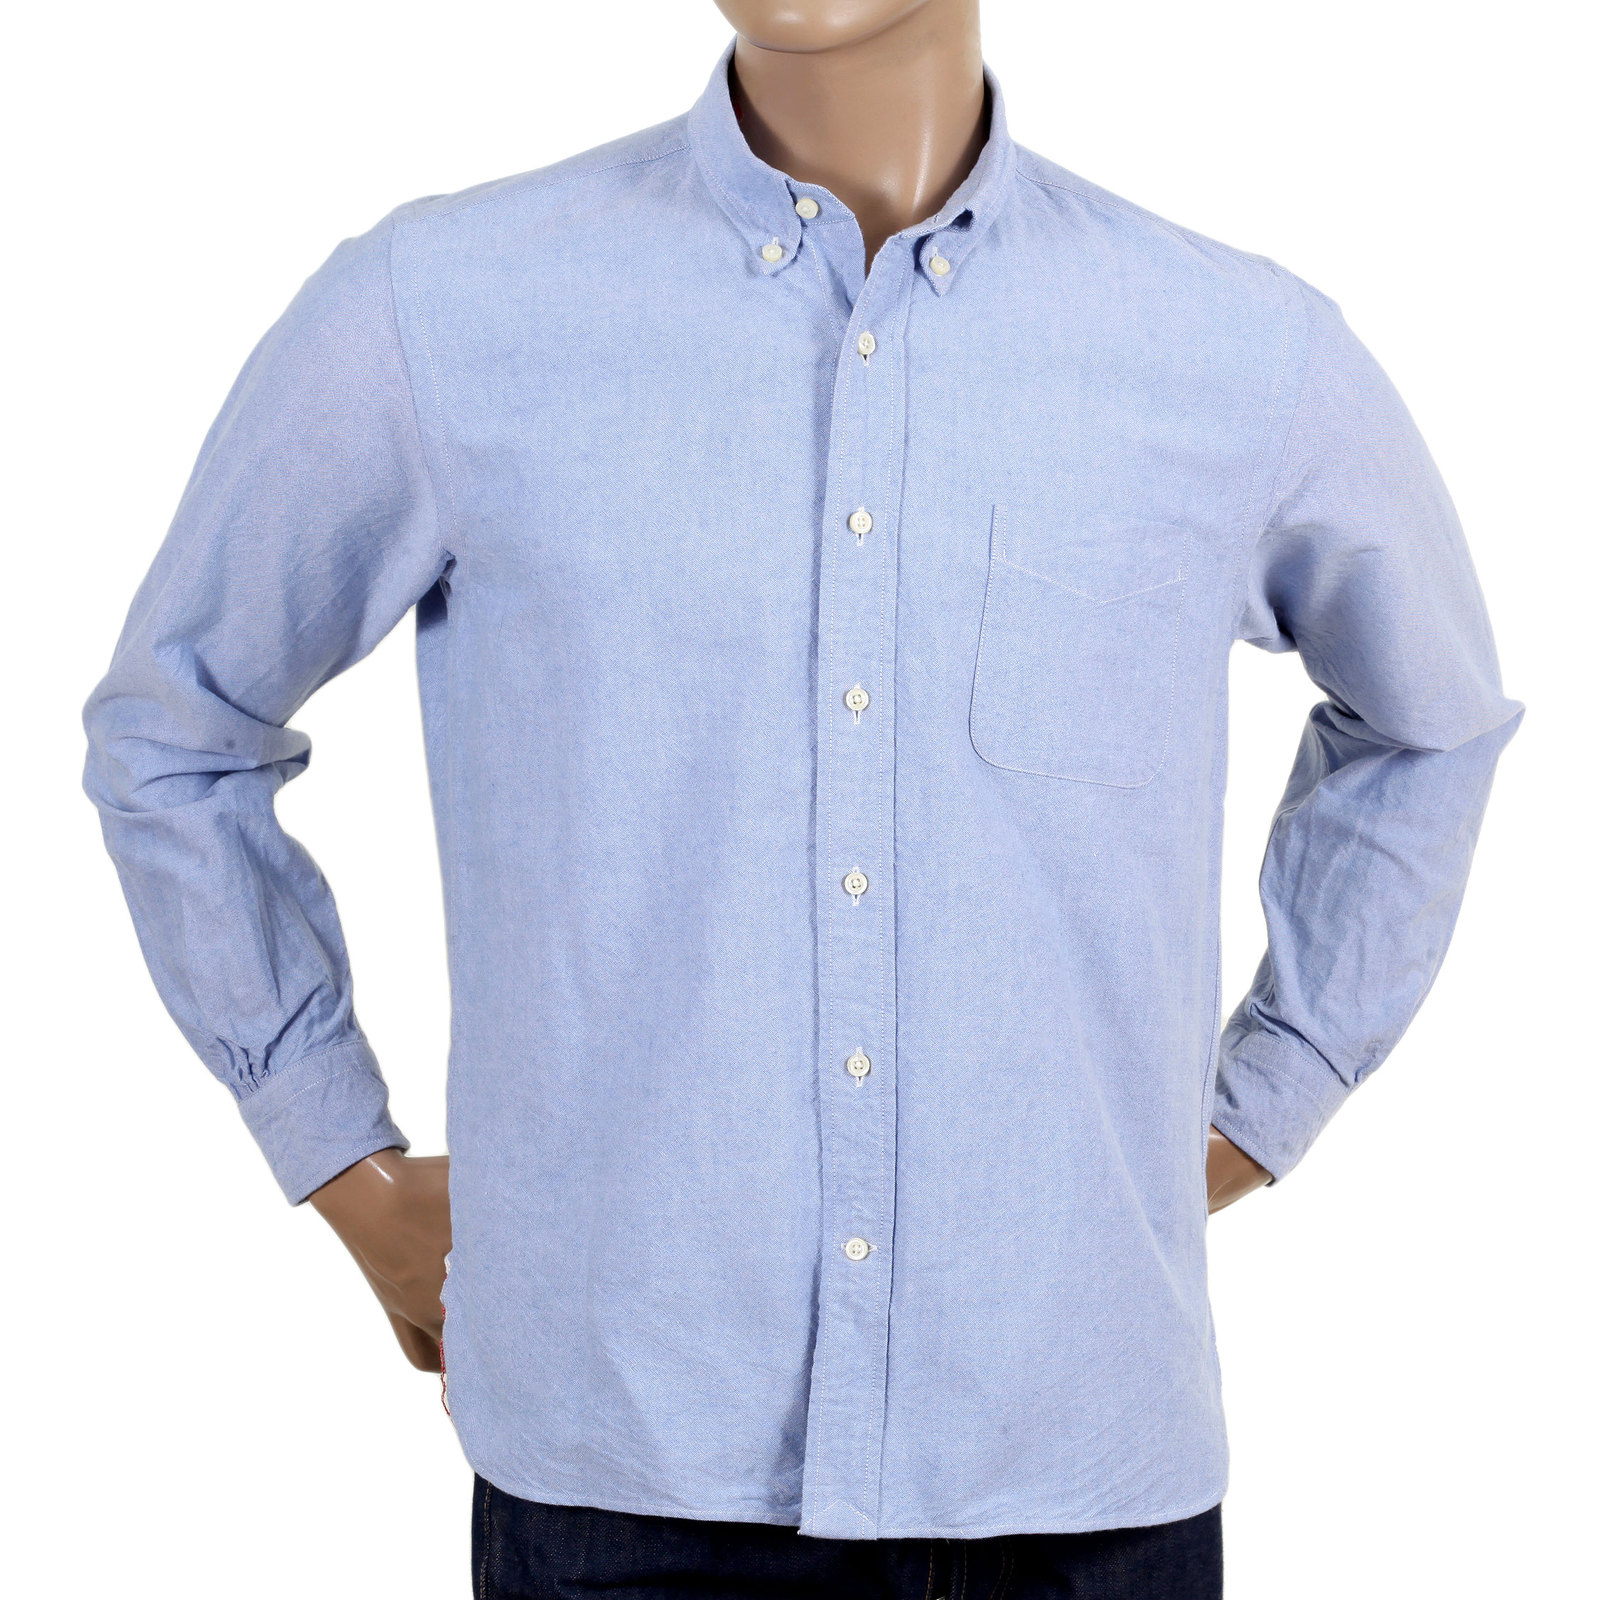 Buy oxford blue shirt for men with button down collars for Light blue button down shirt